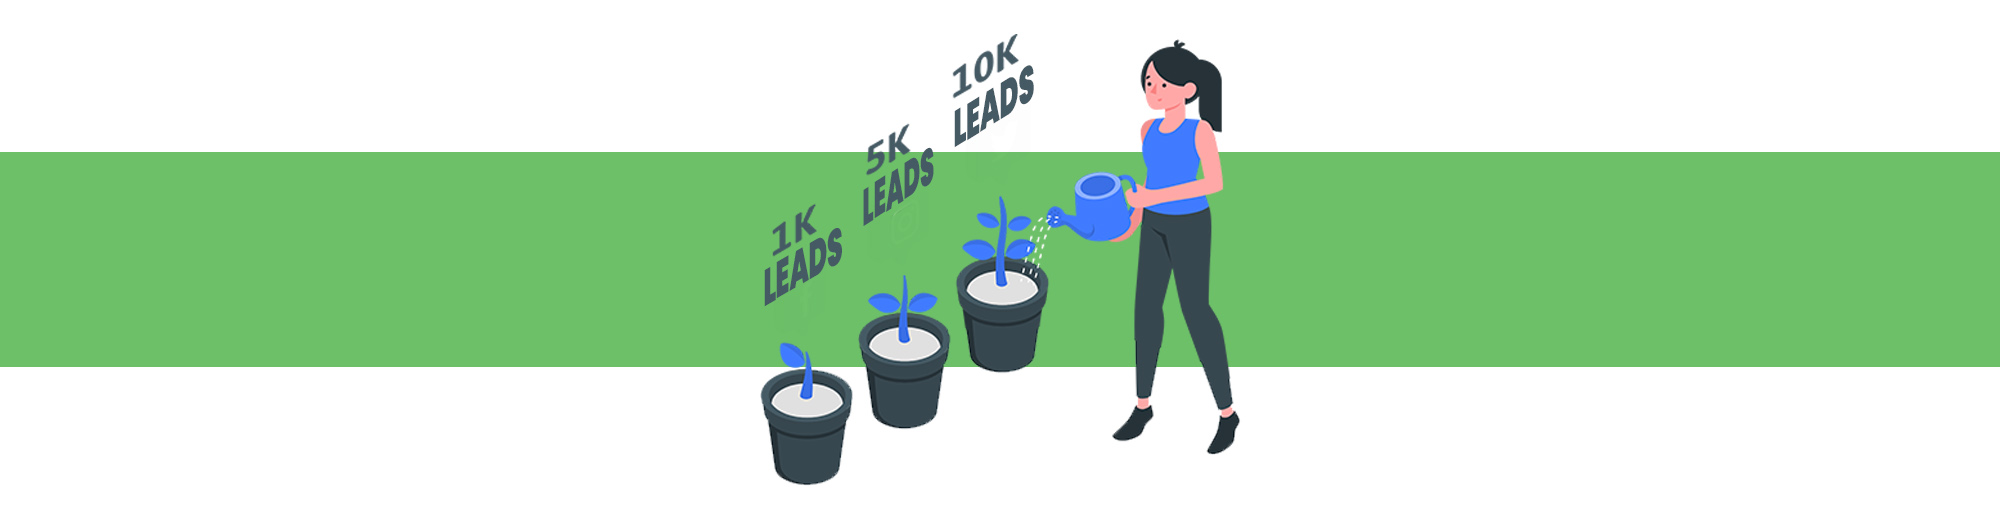 Increased Number of New Leads